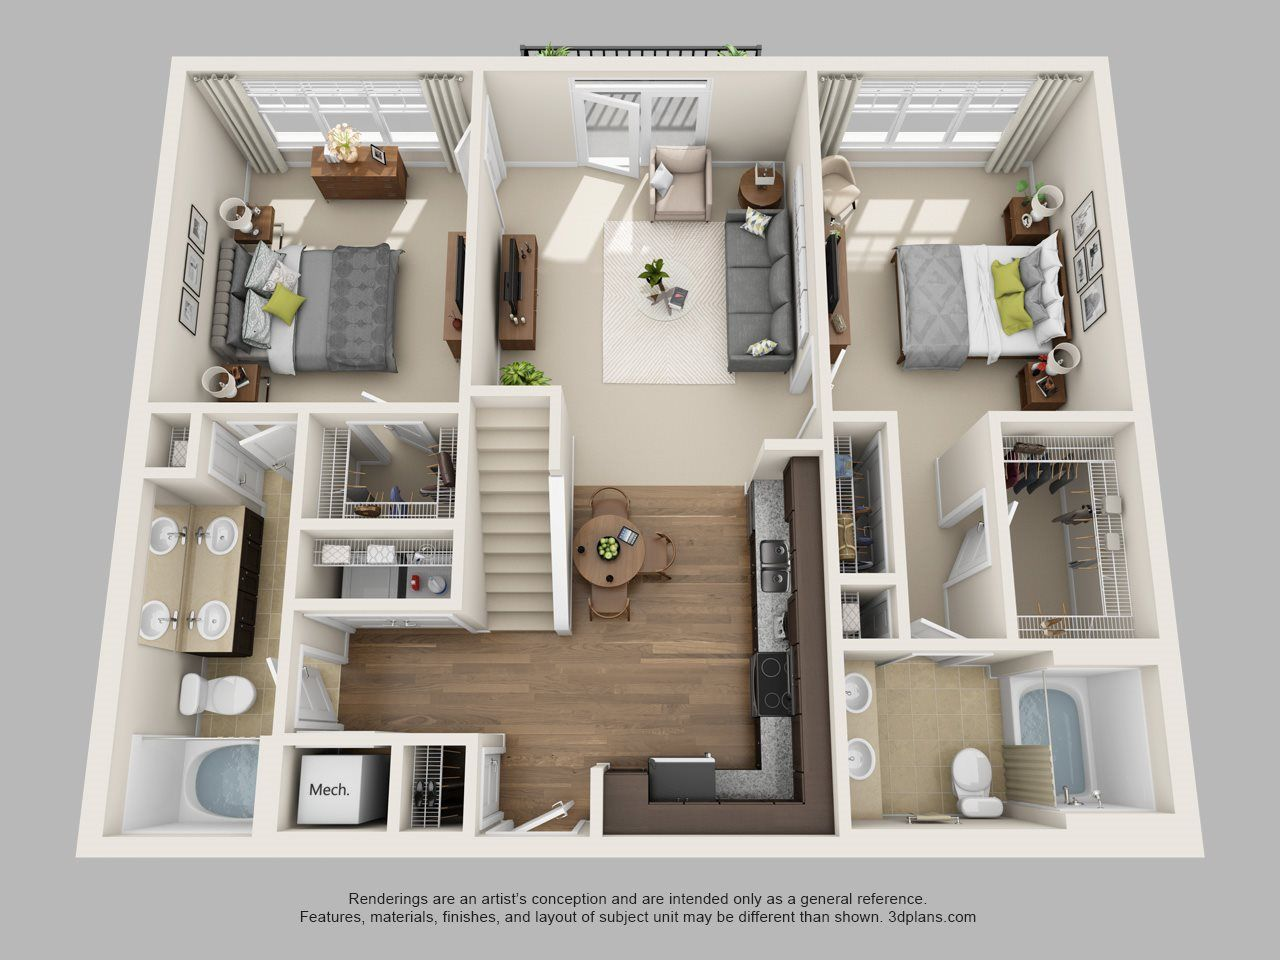 Floor Plans Of Meridian At Harrison Pointe In Cary Nc Floor Plans Small House Plans Facade House